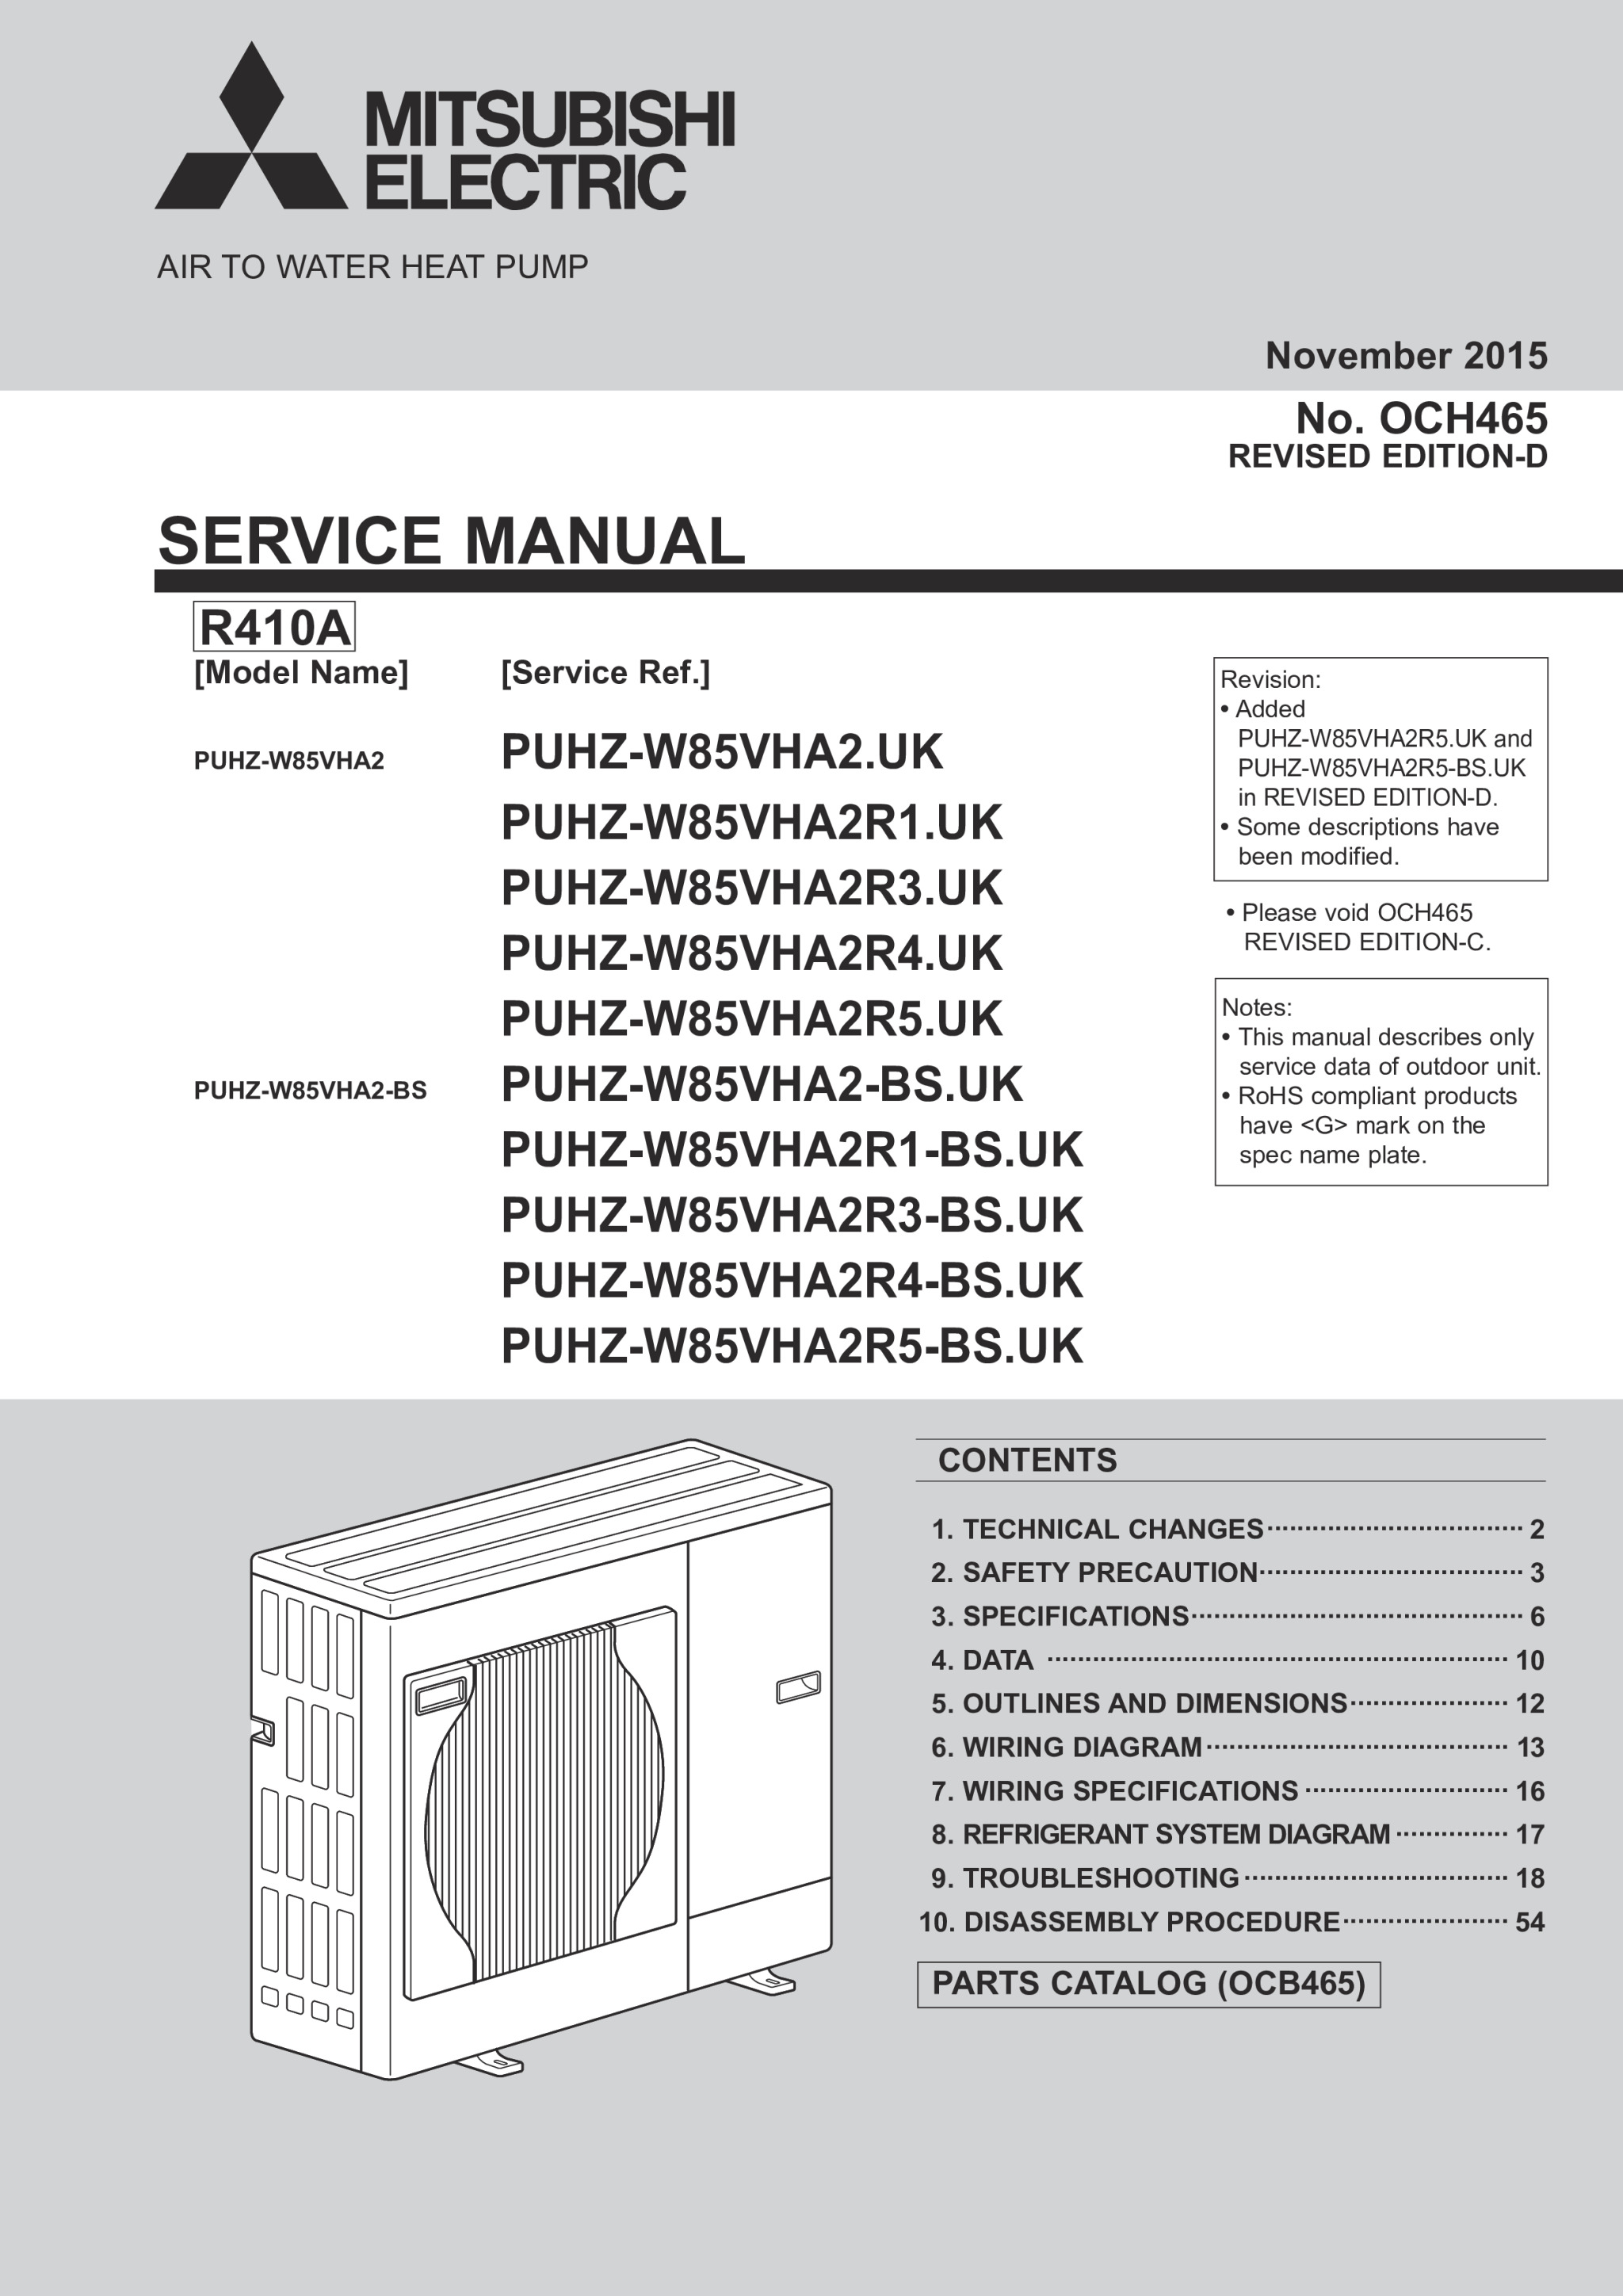 ecodan puhz w85vha2 bs service manual och465d mitsubishi electric rh library mitsubishielectric co uk Mitsubishi Eclipse Spyder Mitsubishi Montero Engine Manual